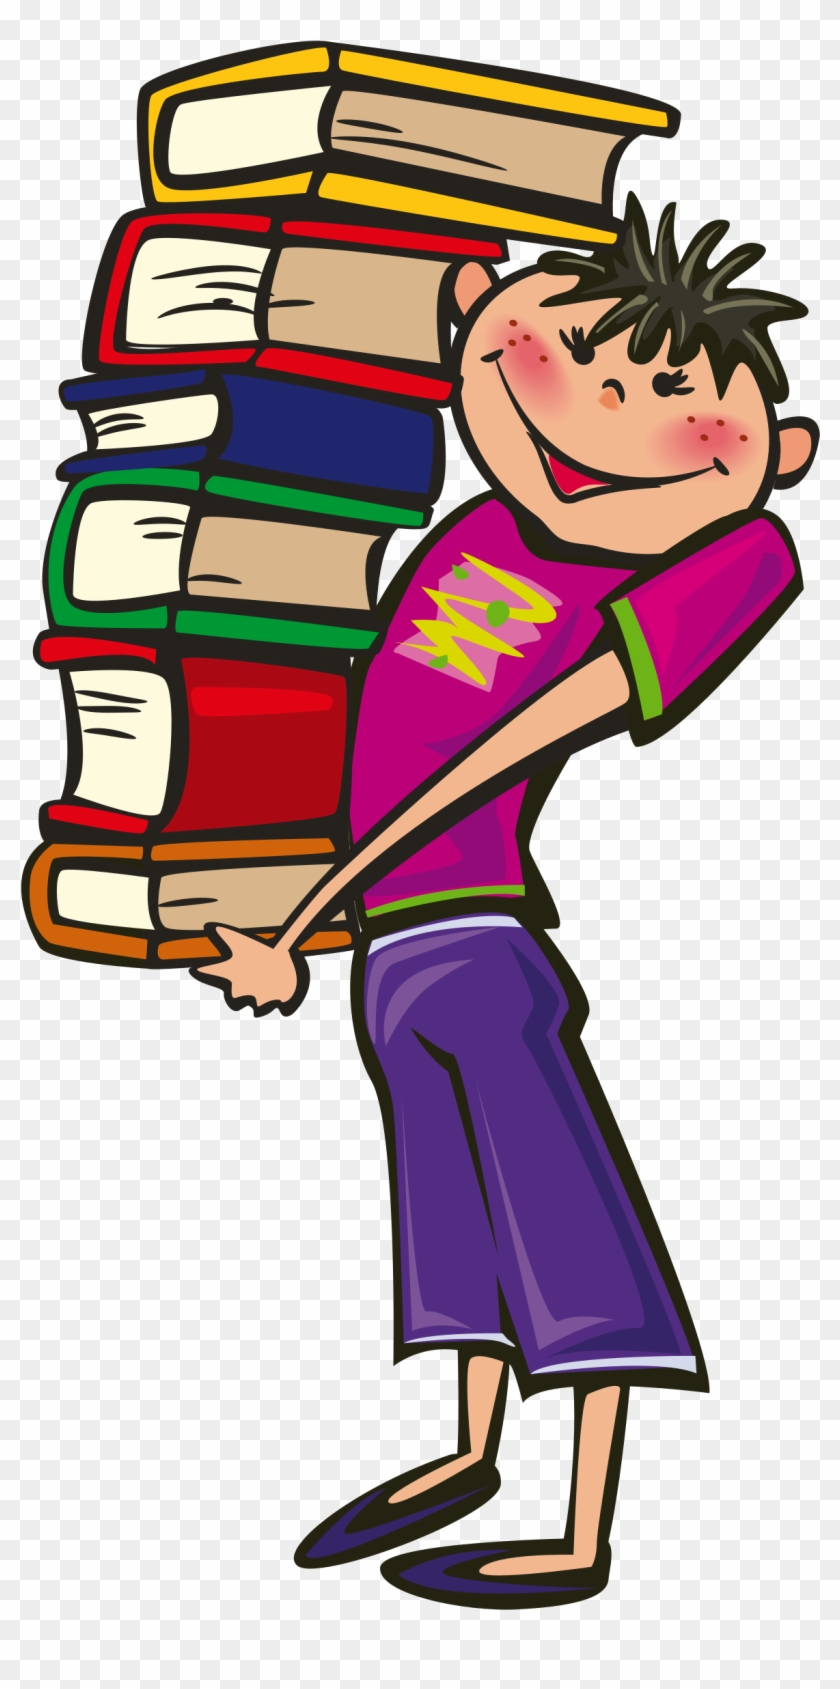 Big Image - Student Carrying Books Clipart #7236